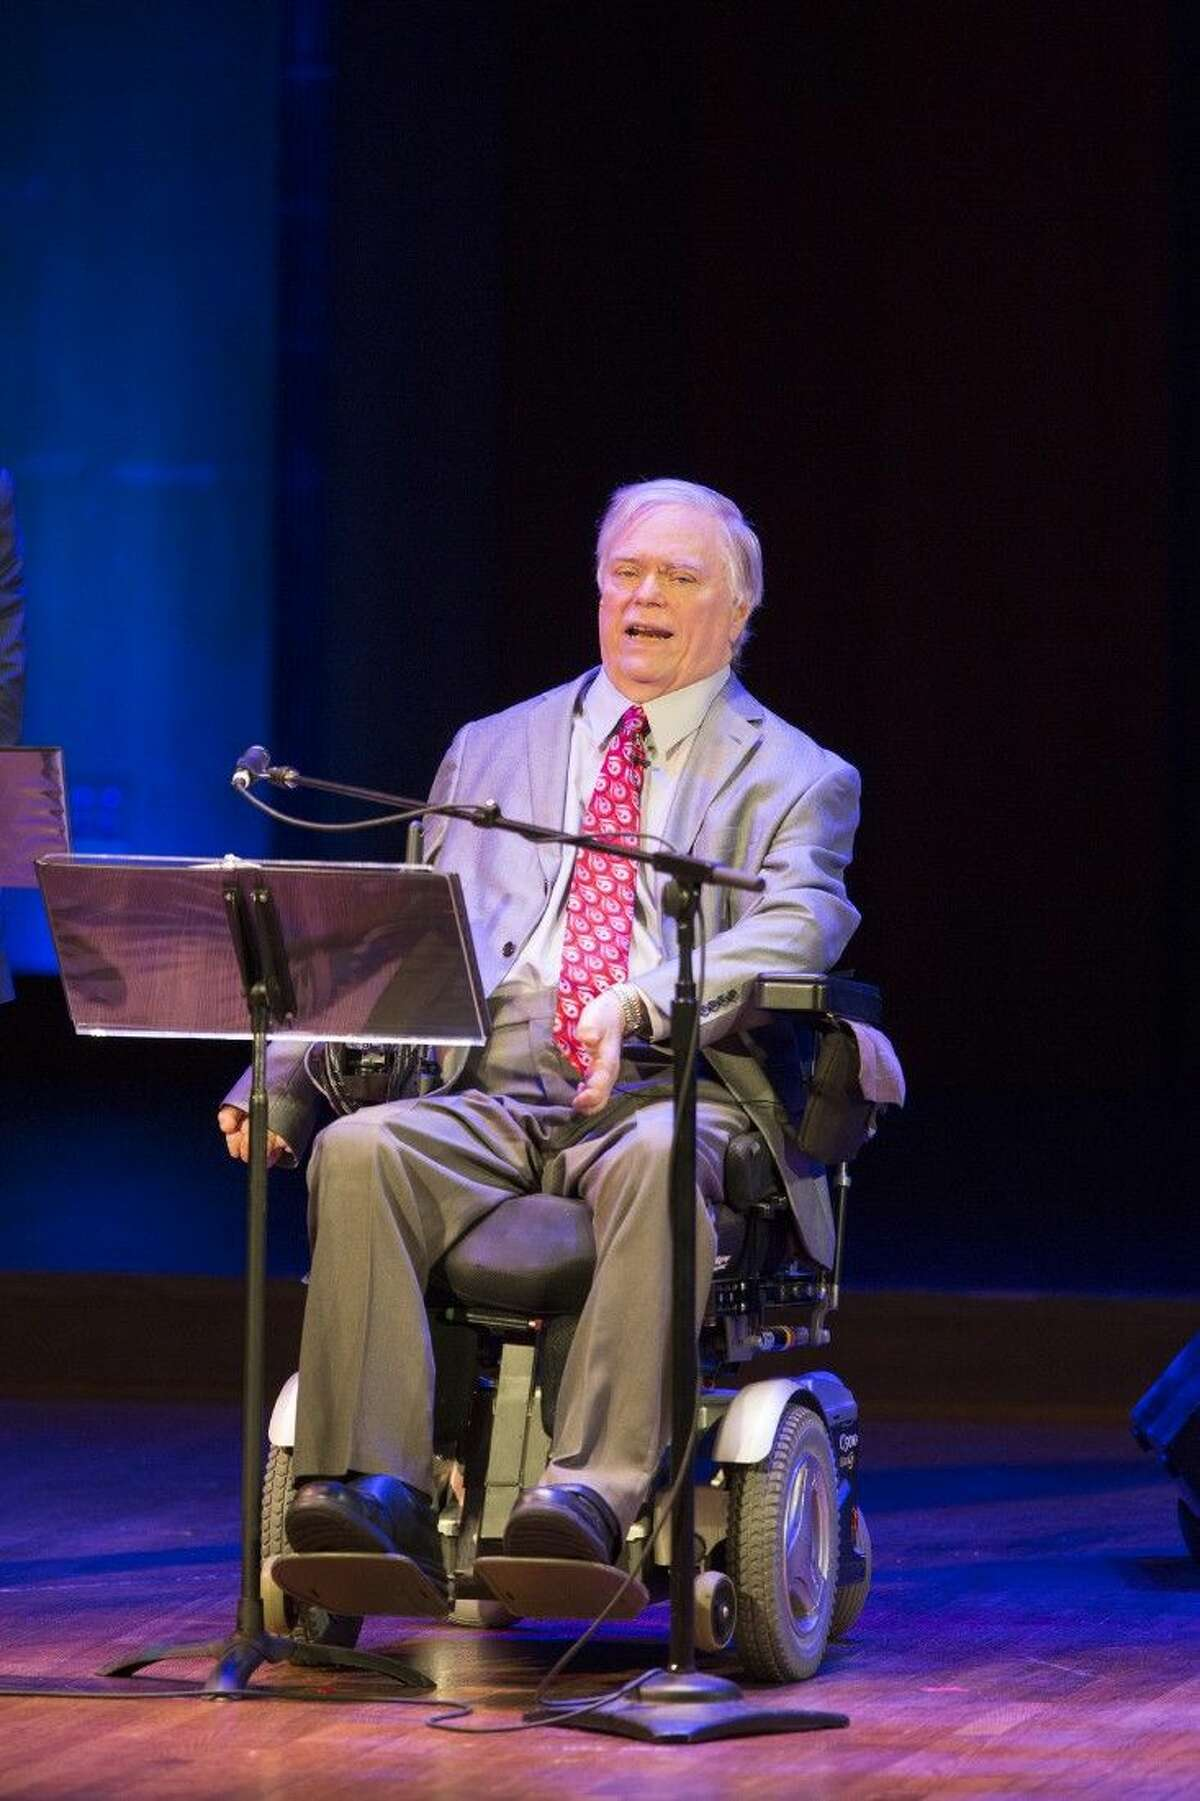 Recently in Washington, D.C., for the 25th anniversary of the Americans with Disabilities Act (ADA), UTHealth/TIRR Memorial Hermann's Lex Frieden addressed a gathering at the John F. Kennedy Center for the Performing Arts.